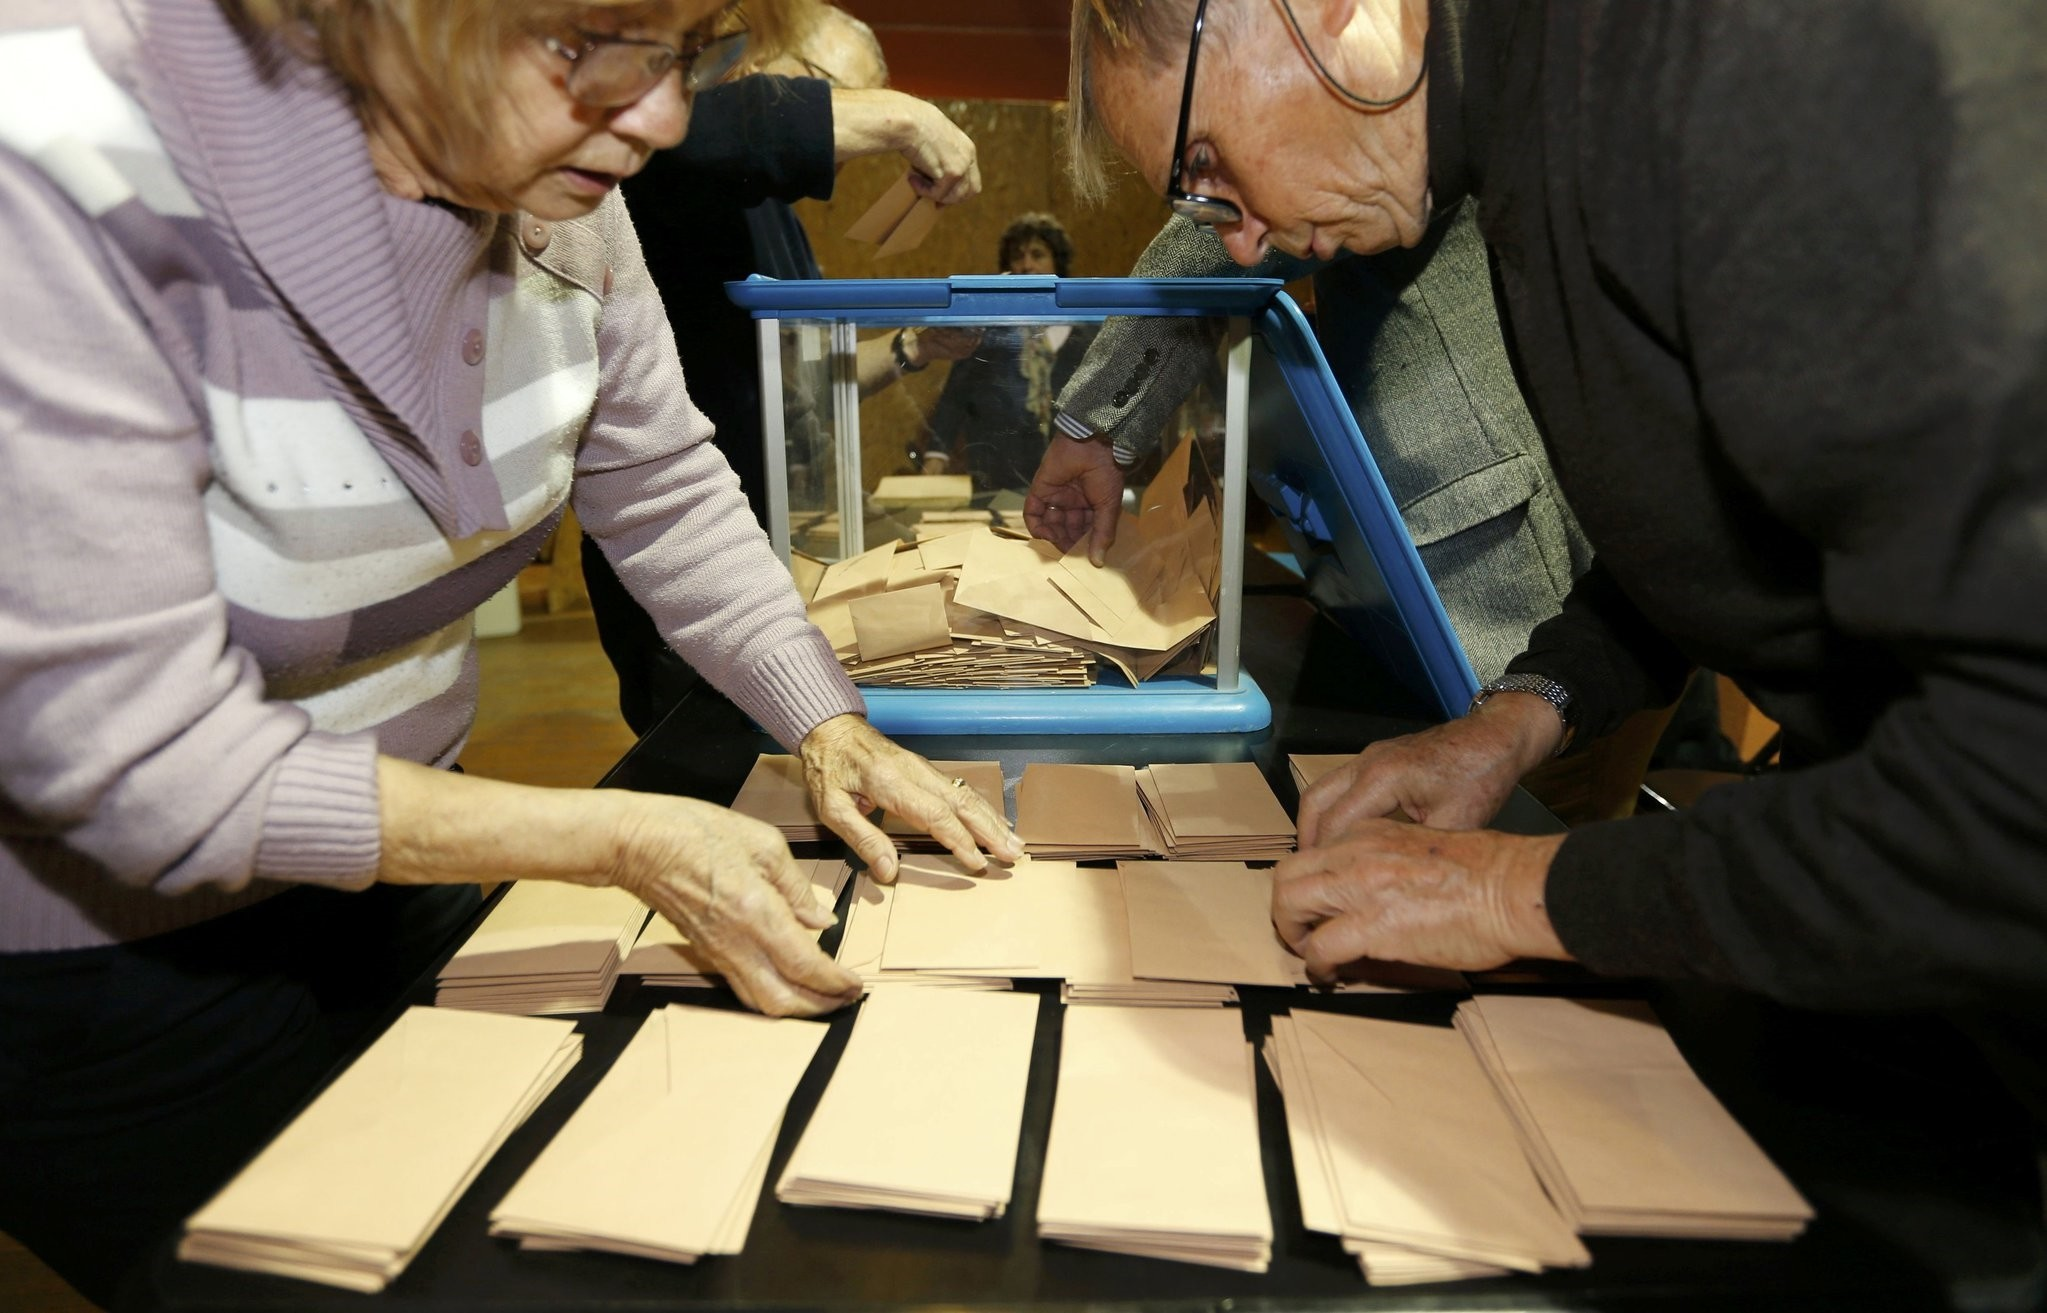 Officials stack envelopes containing ballots at a polling station in the first round vote of the French center-right presidential primary election in Bordeaux, France, November 20, 2016. (Reuters Photo)